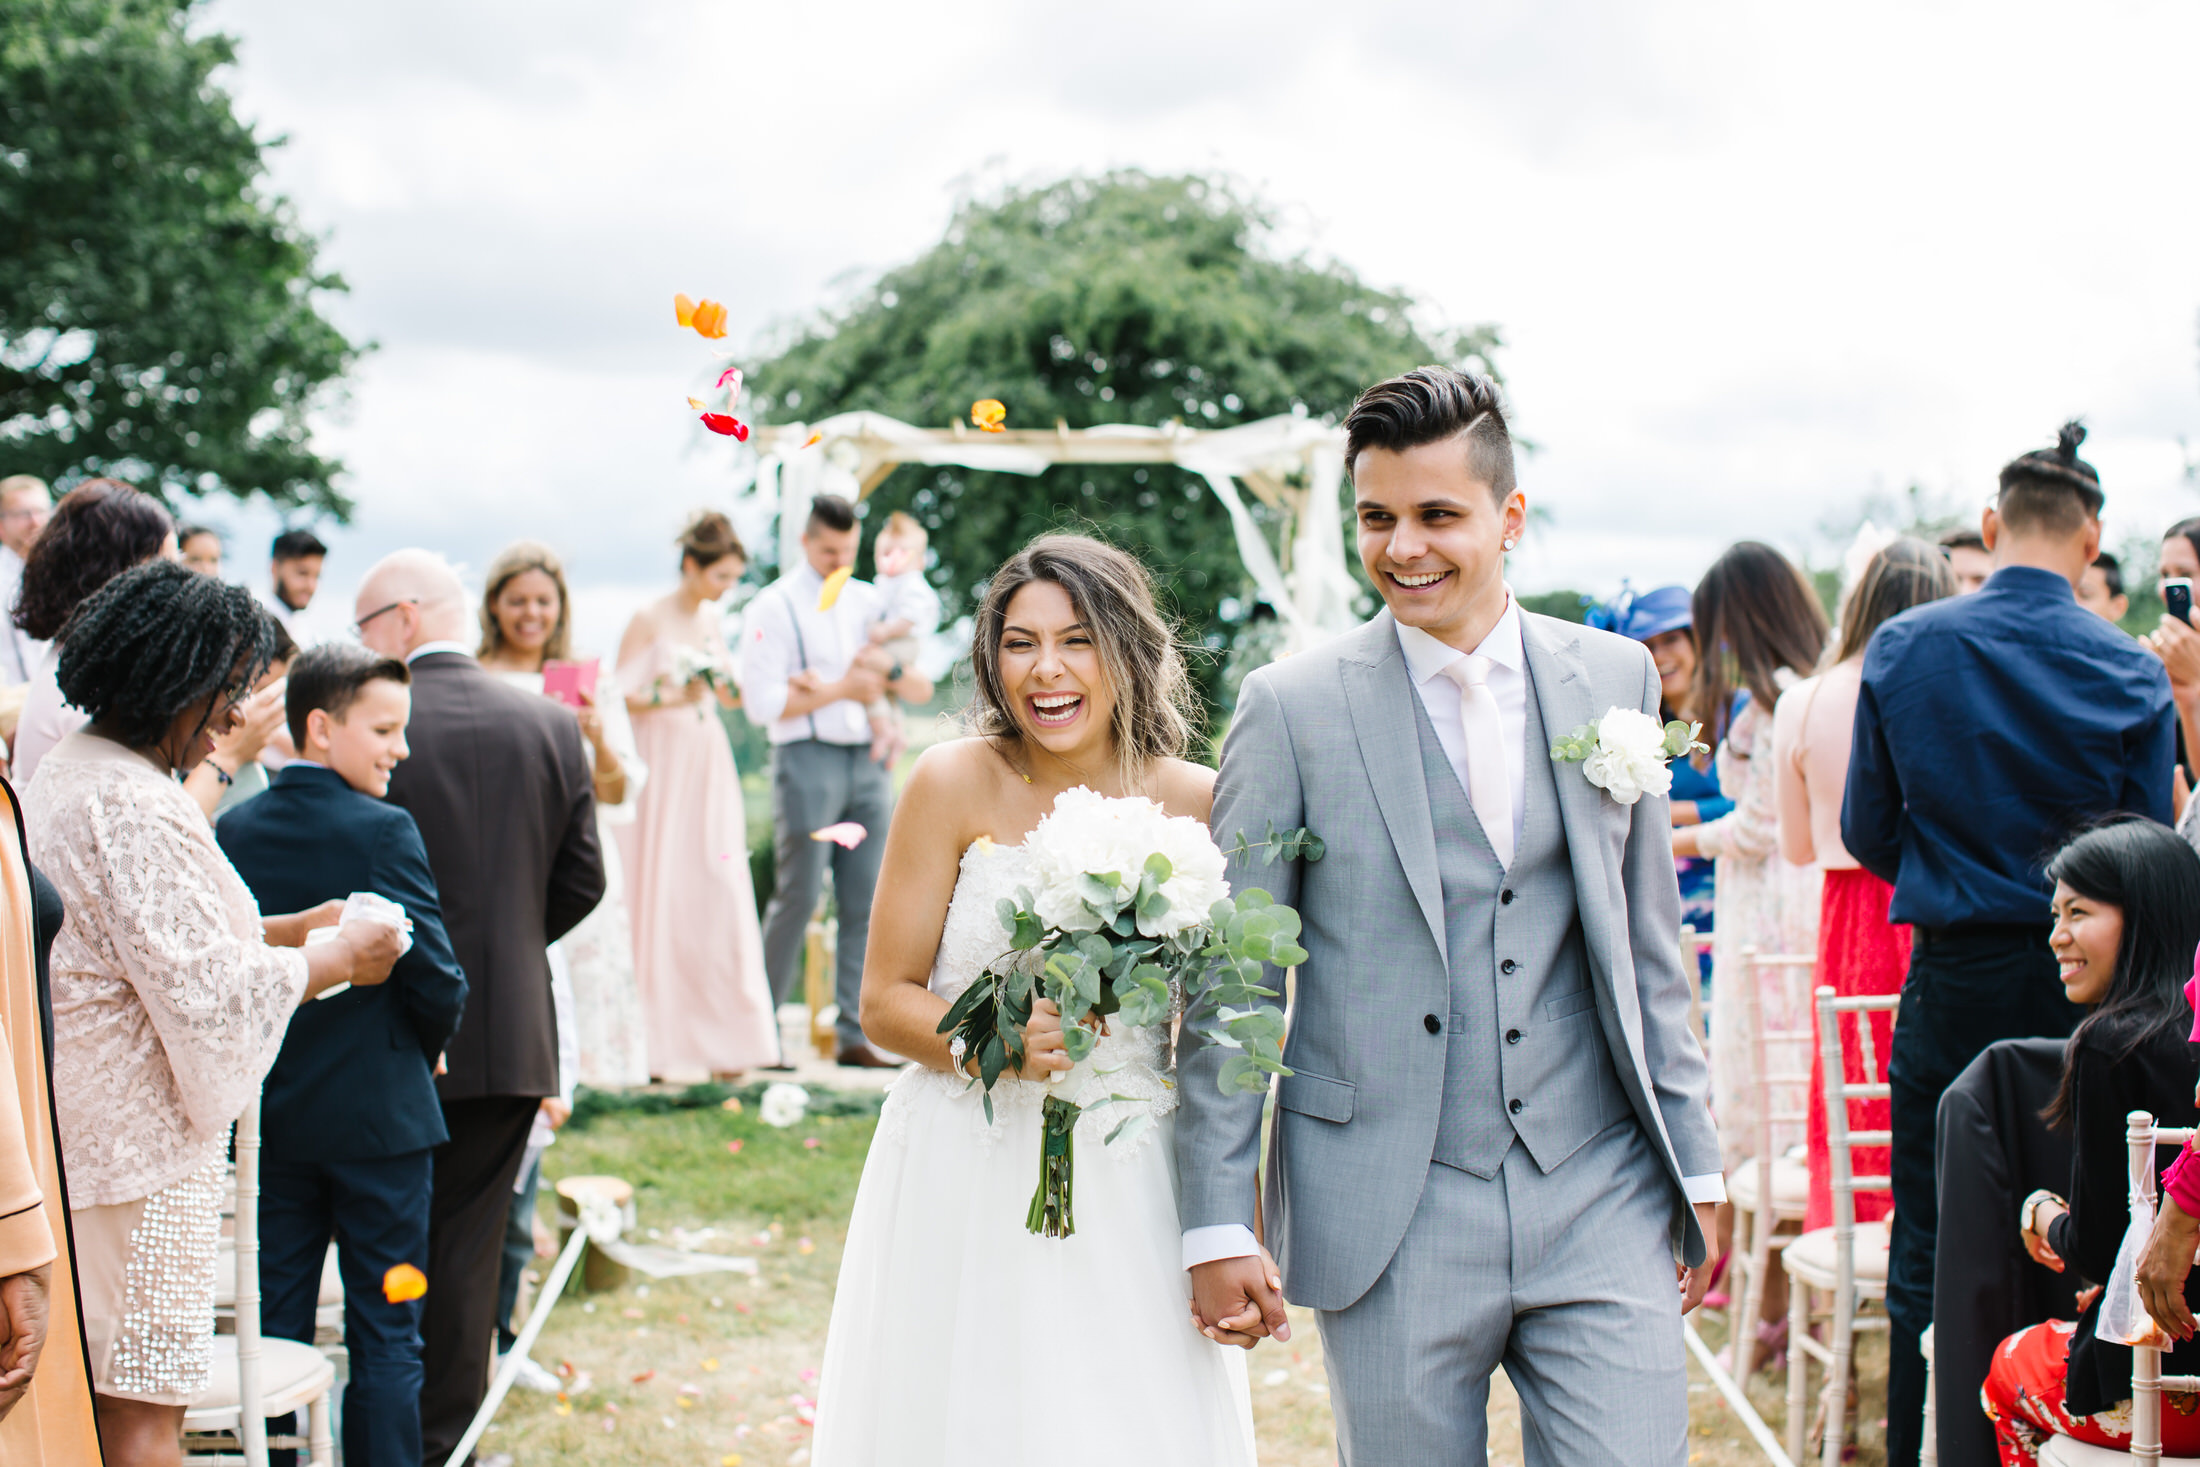 how to plan a back garden wedding bride and groom walk down aisle with confetti laughing